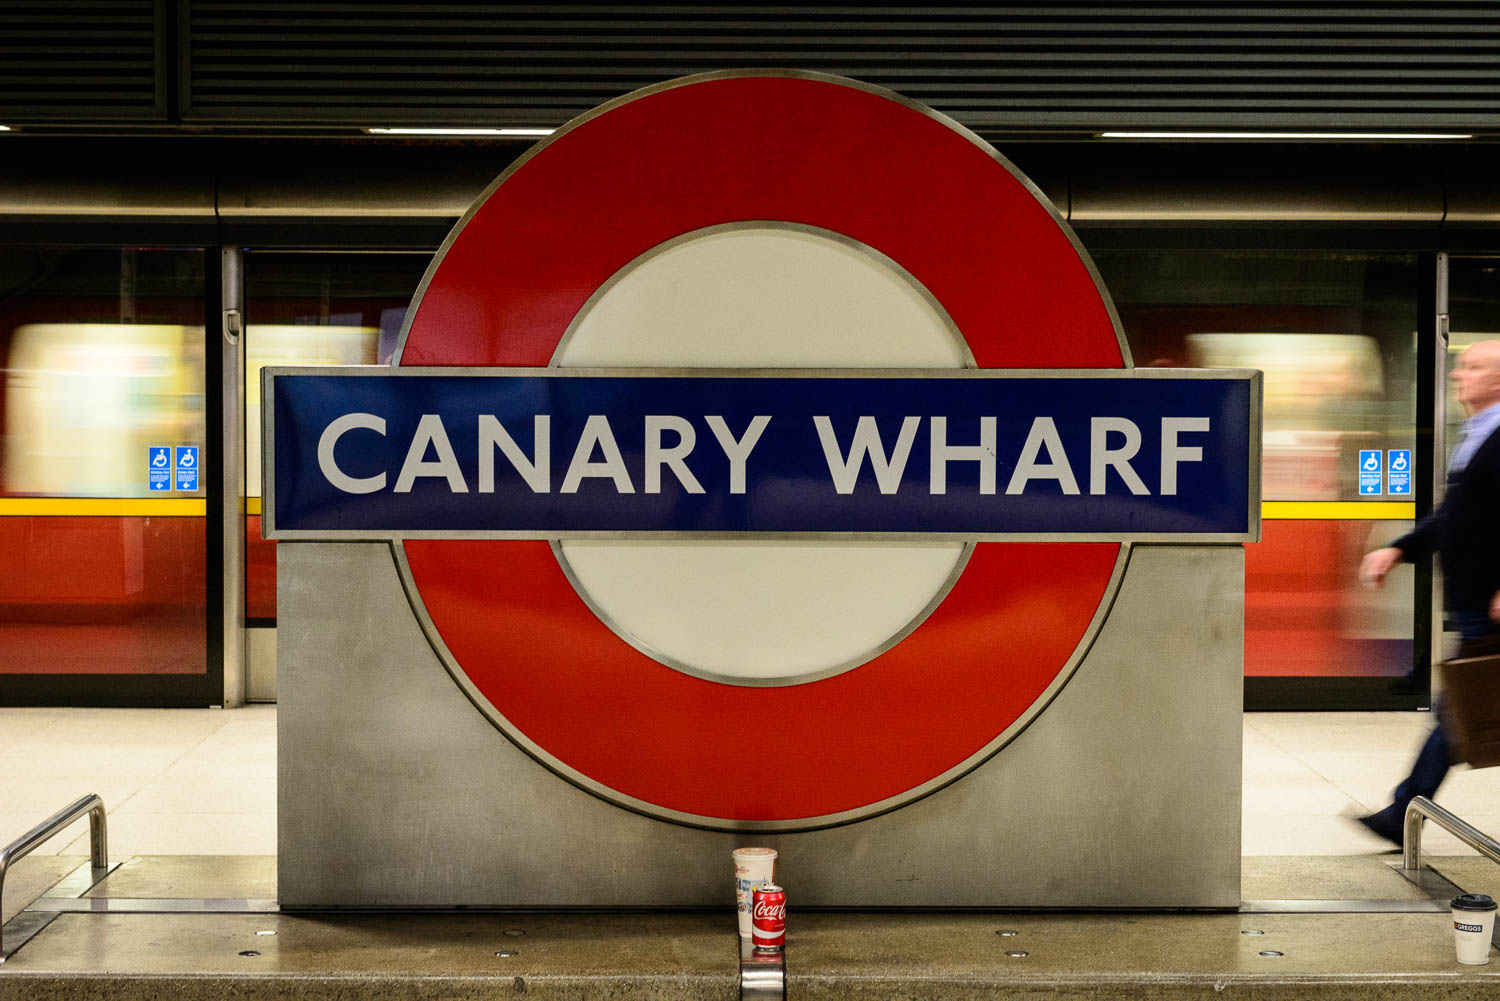 Canary Wharf underground tube sign and rushing tube train and commuter